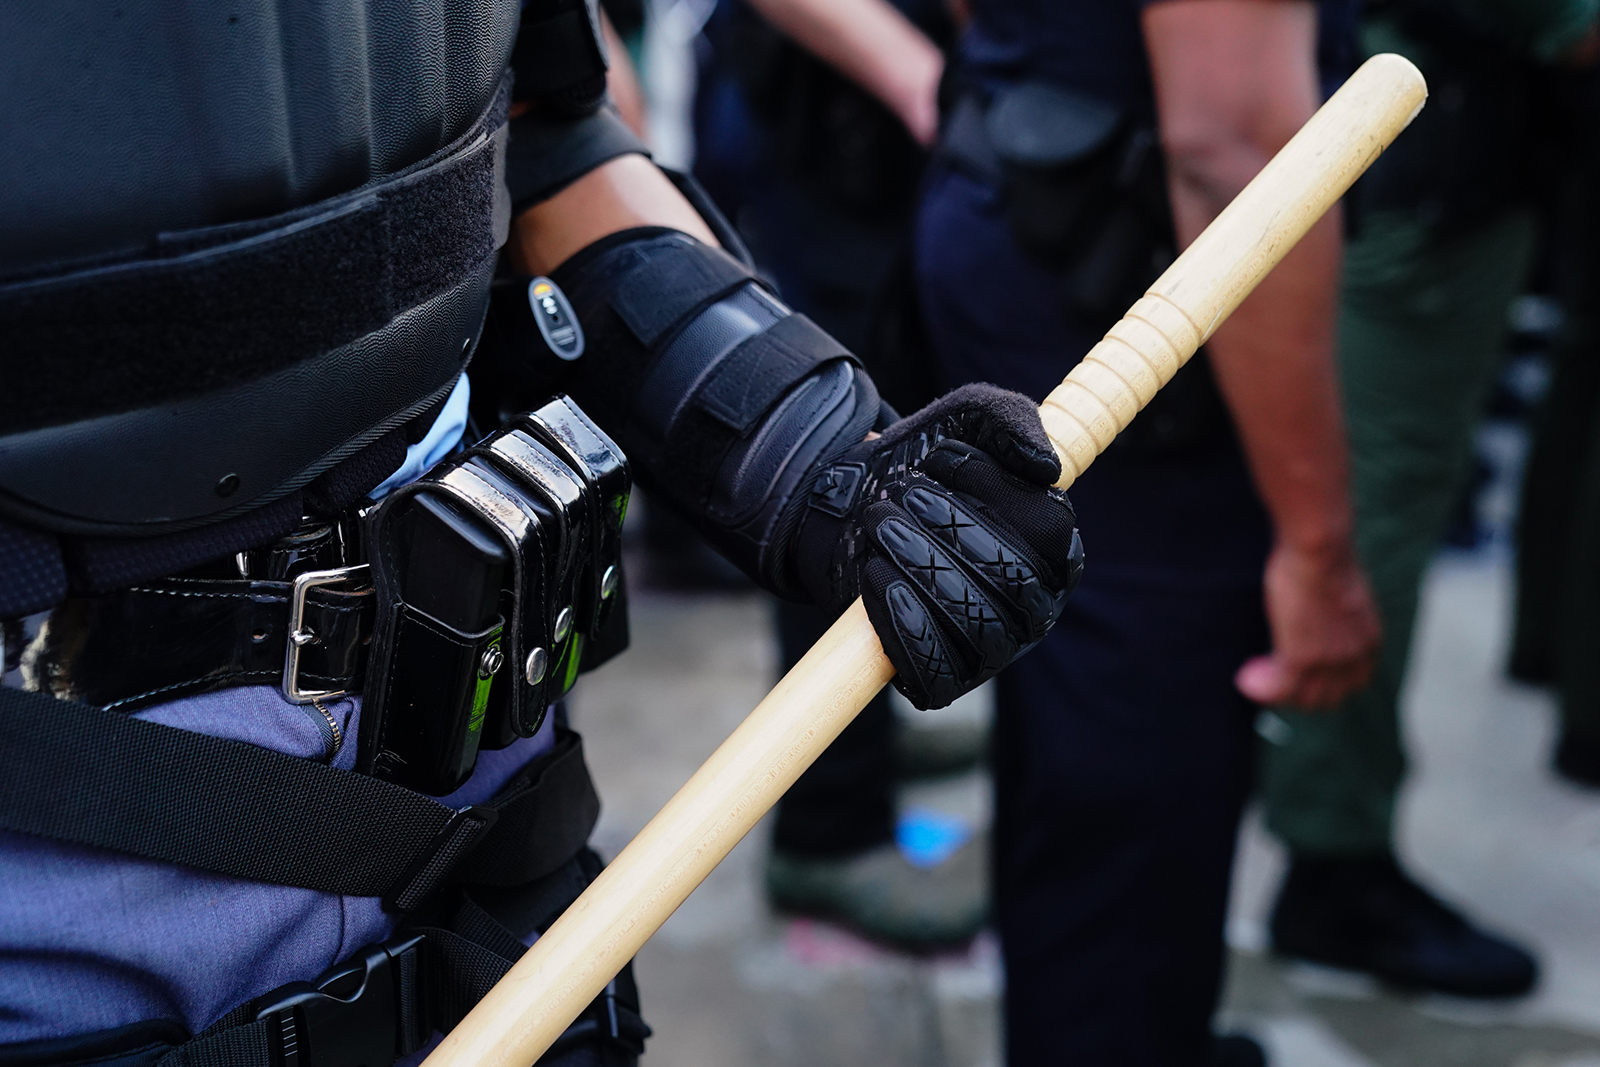 An Atlanta police officer holds a baton during a protest over th death of George Floyd on May 29, in Atlanta.